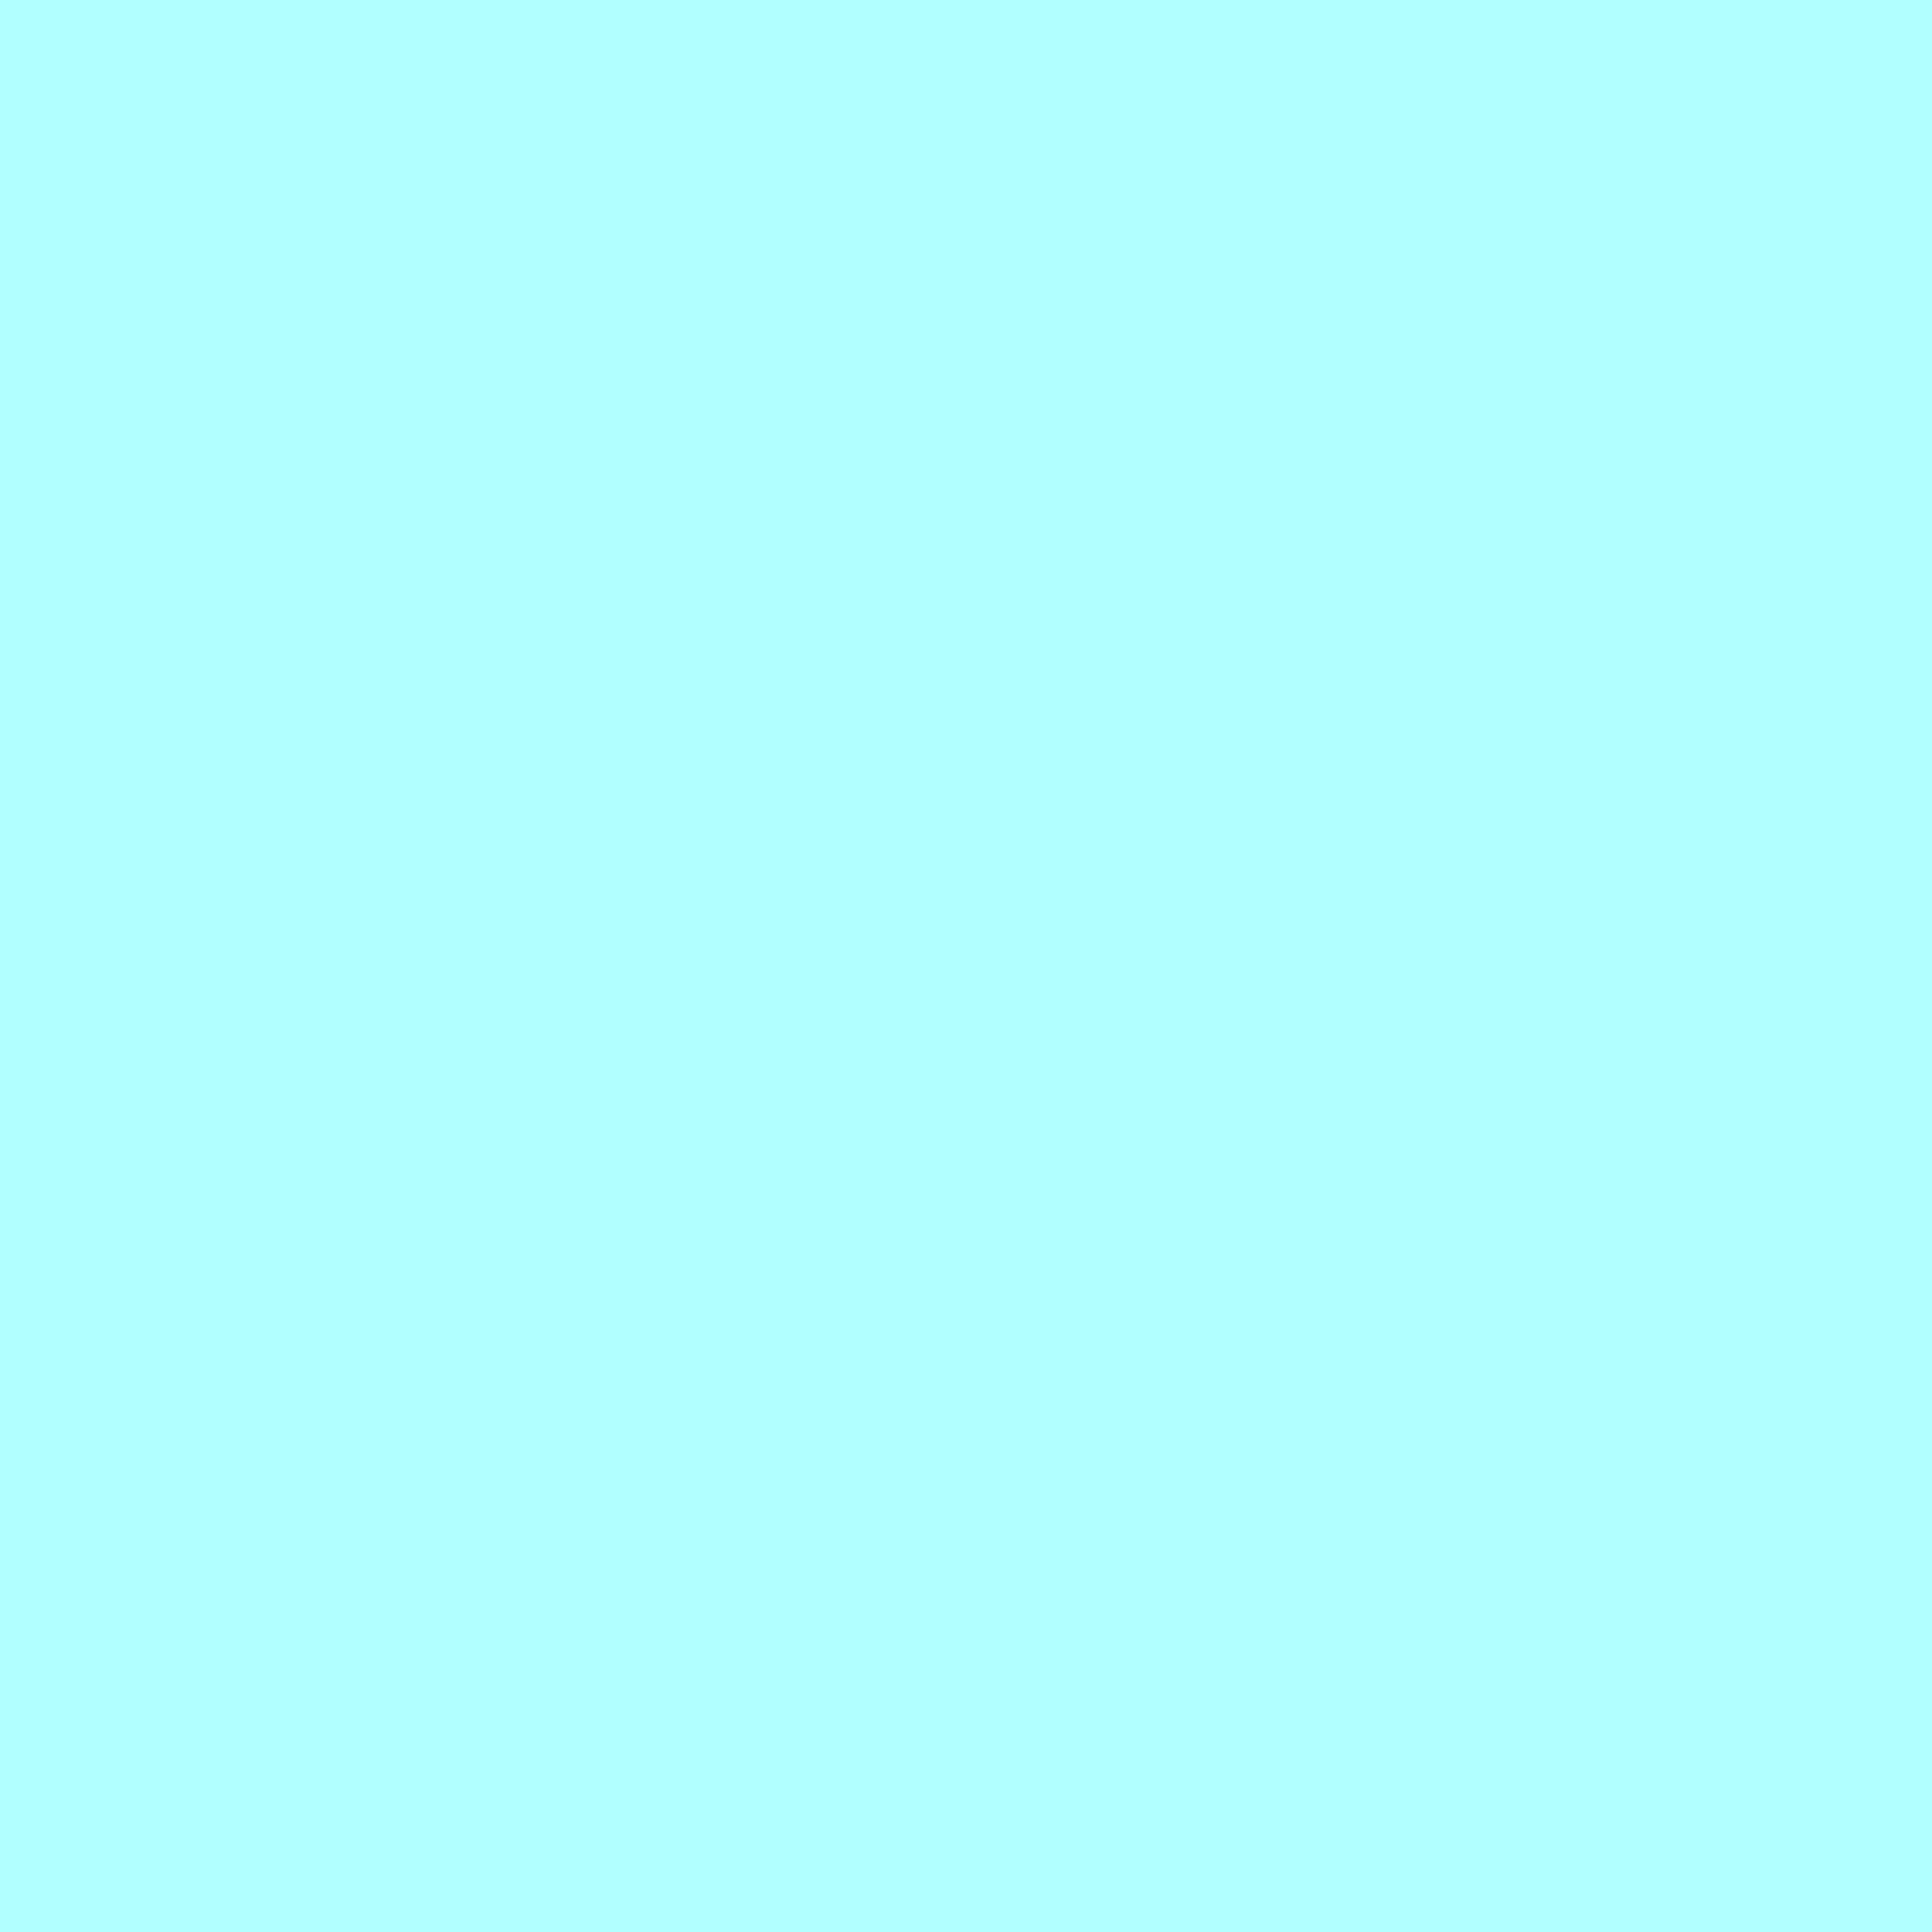 2732x2732 Italian Sky Blue Solid Color Background